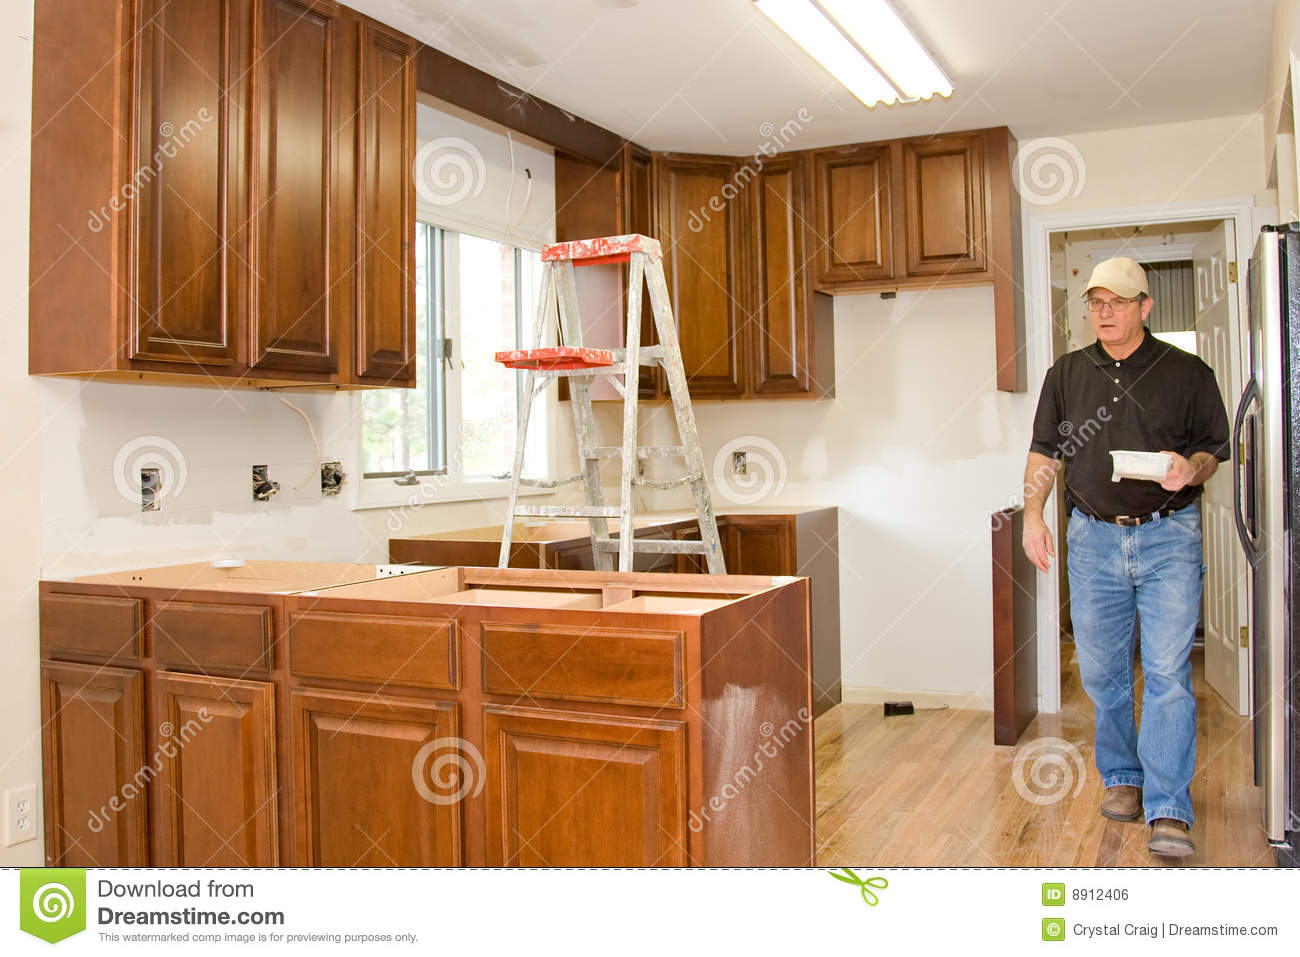 kitchen remodel cabinets home improvement royalty free On home improvement kitchen cabinets